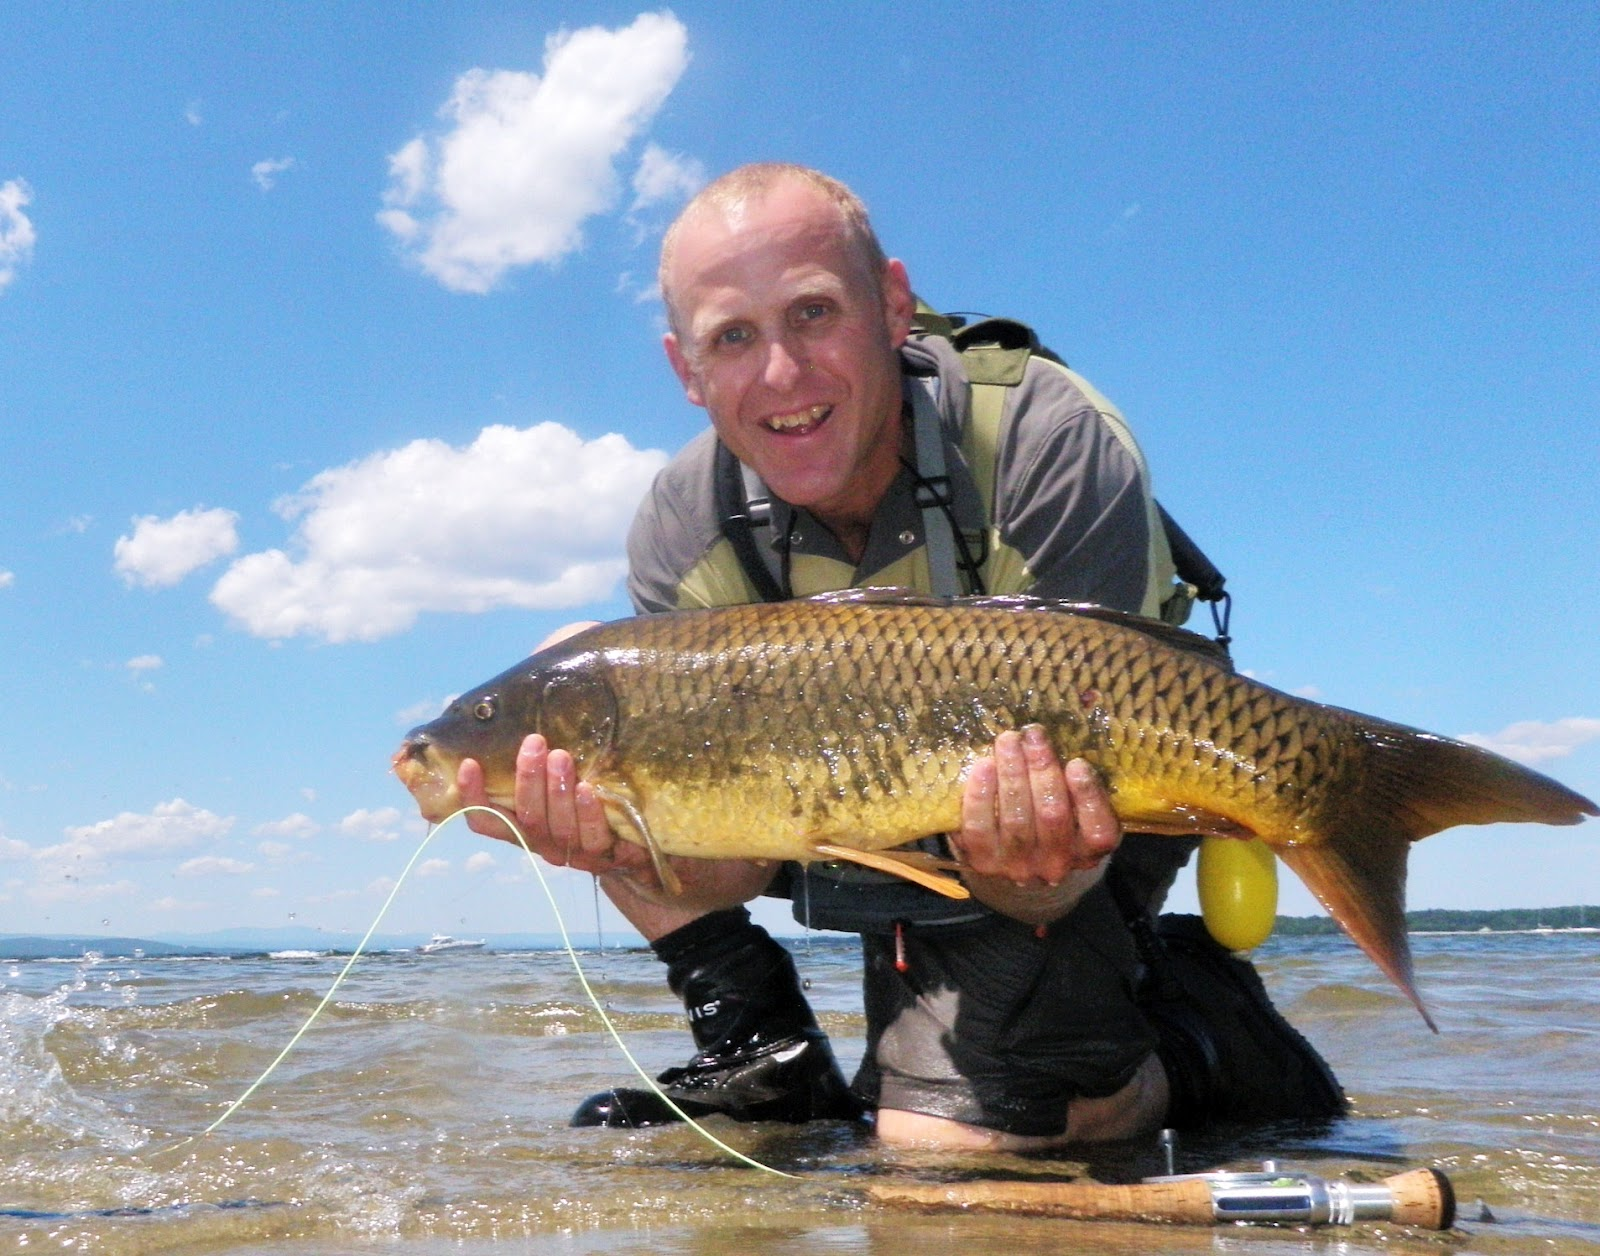 Drew price fly fishing carp in the surf for Fly fishing carp